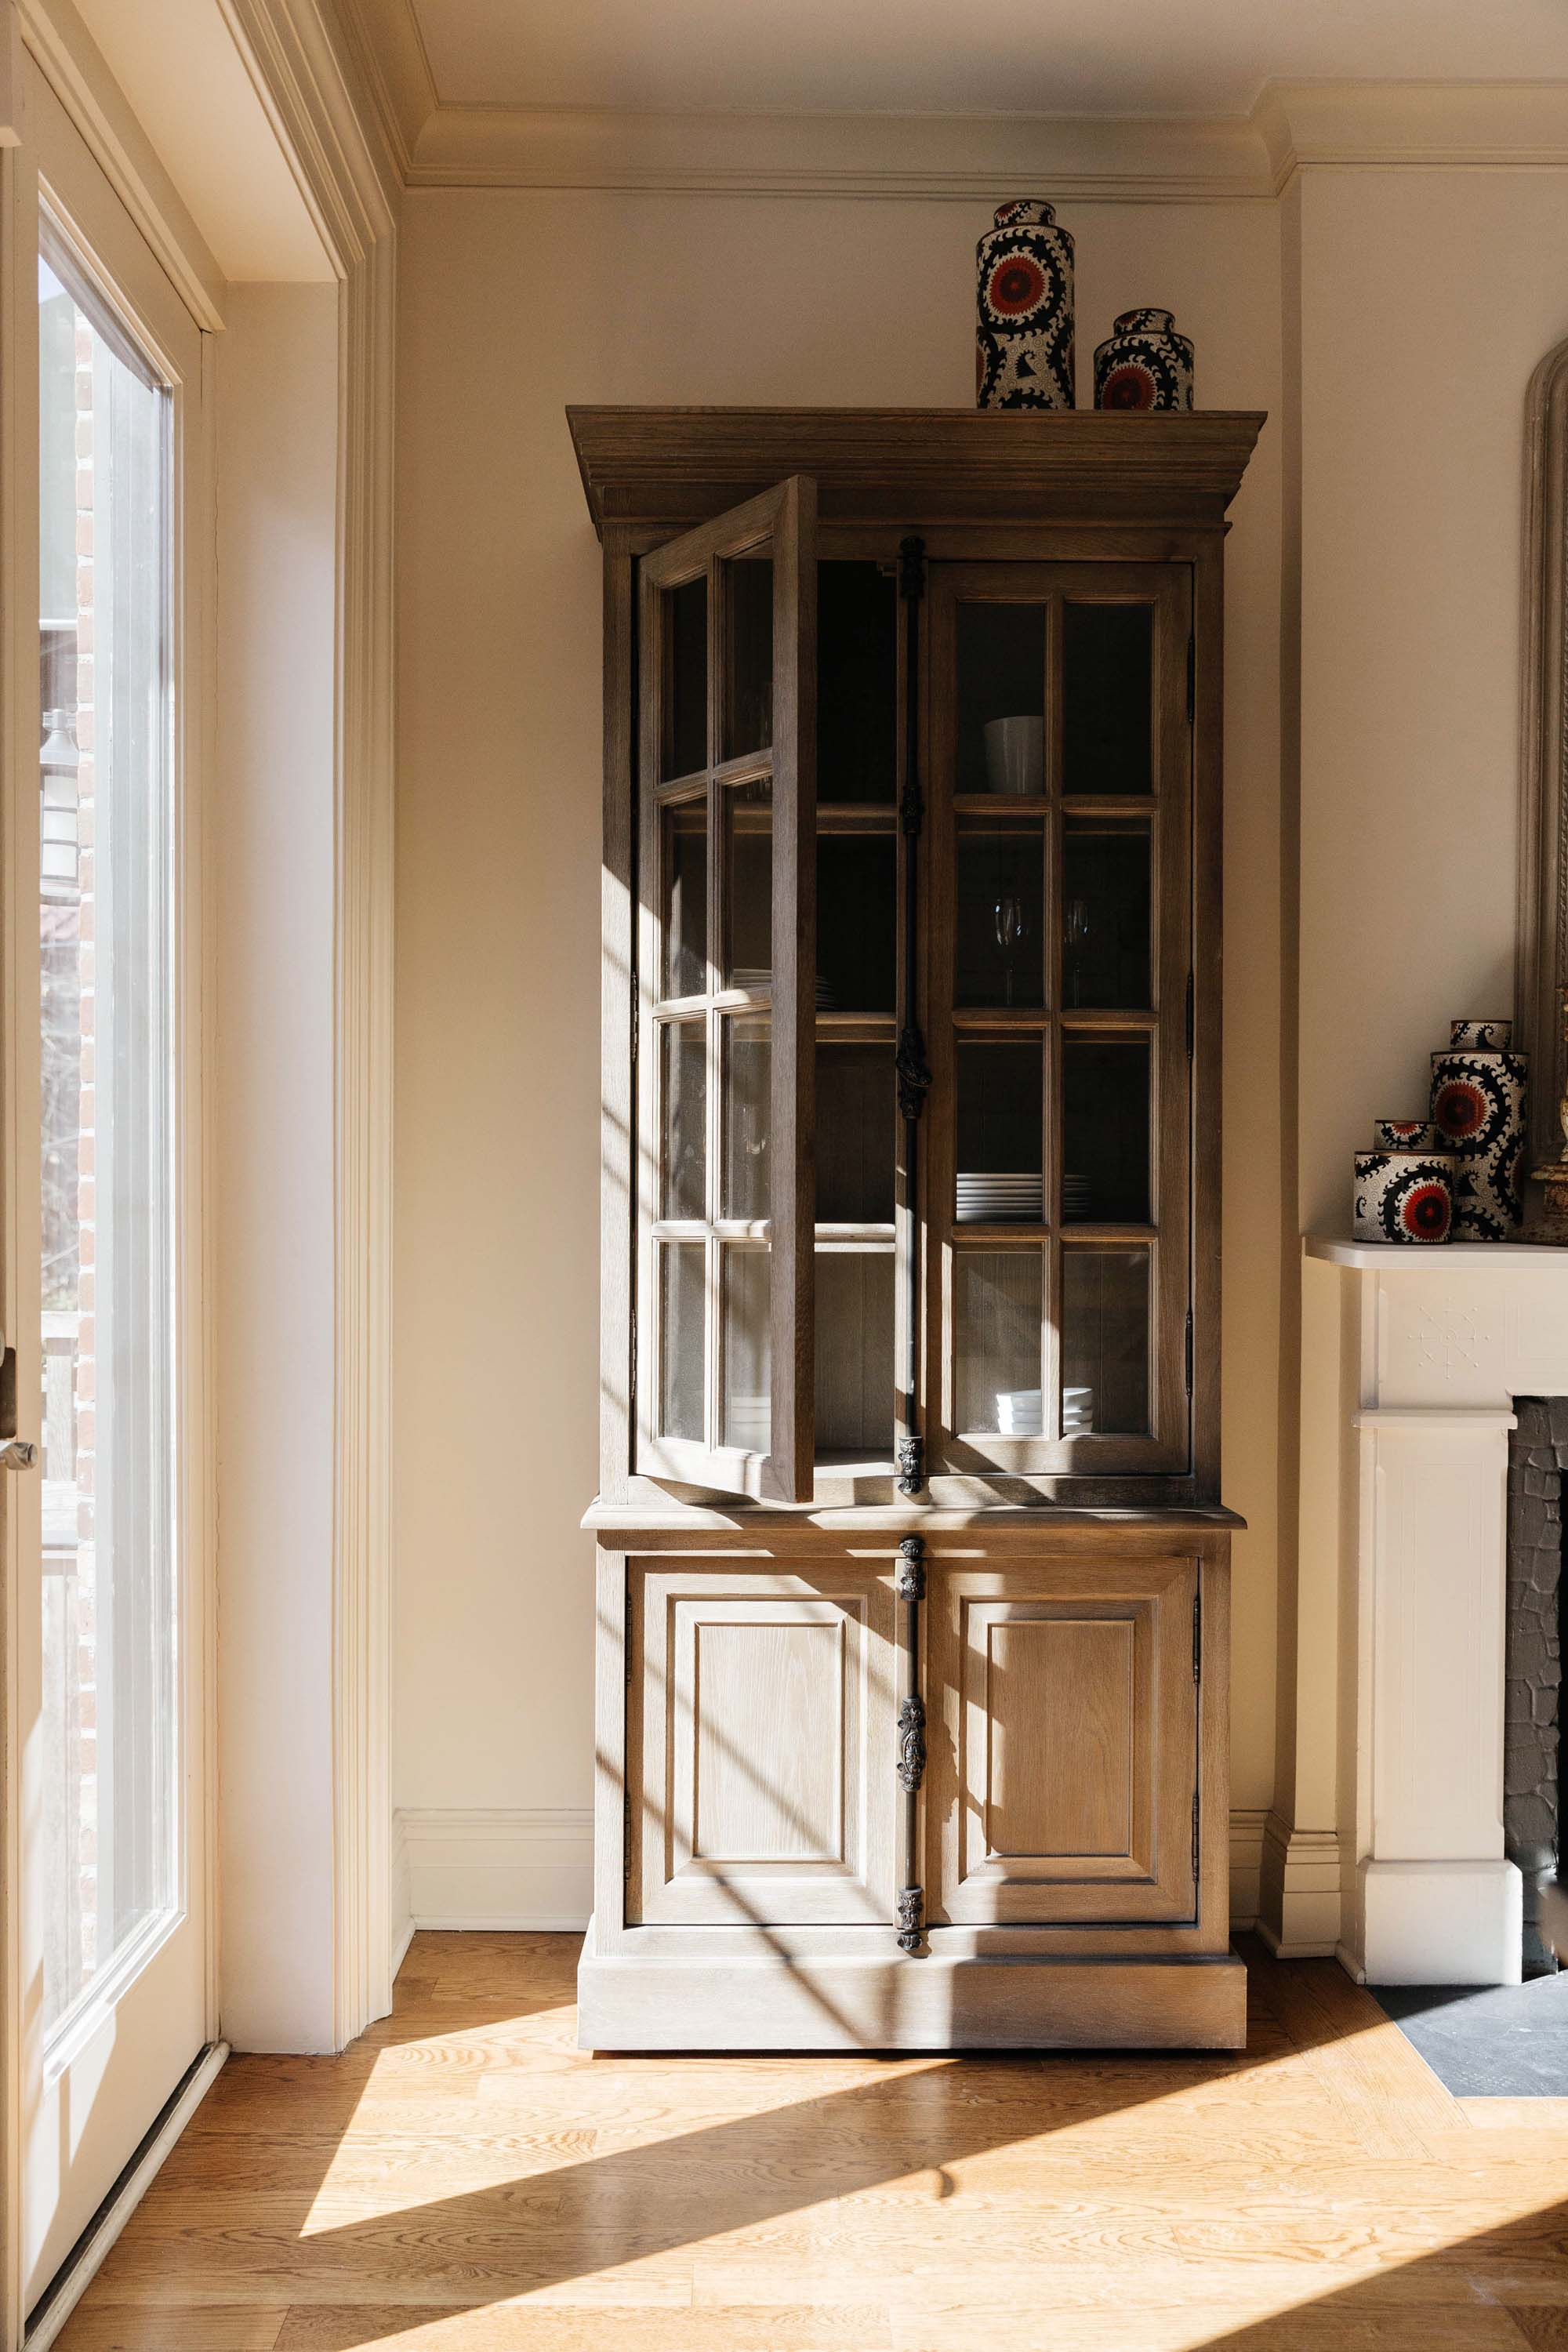 Tall rustic cabinet with dishes inside